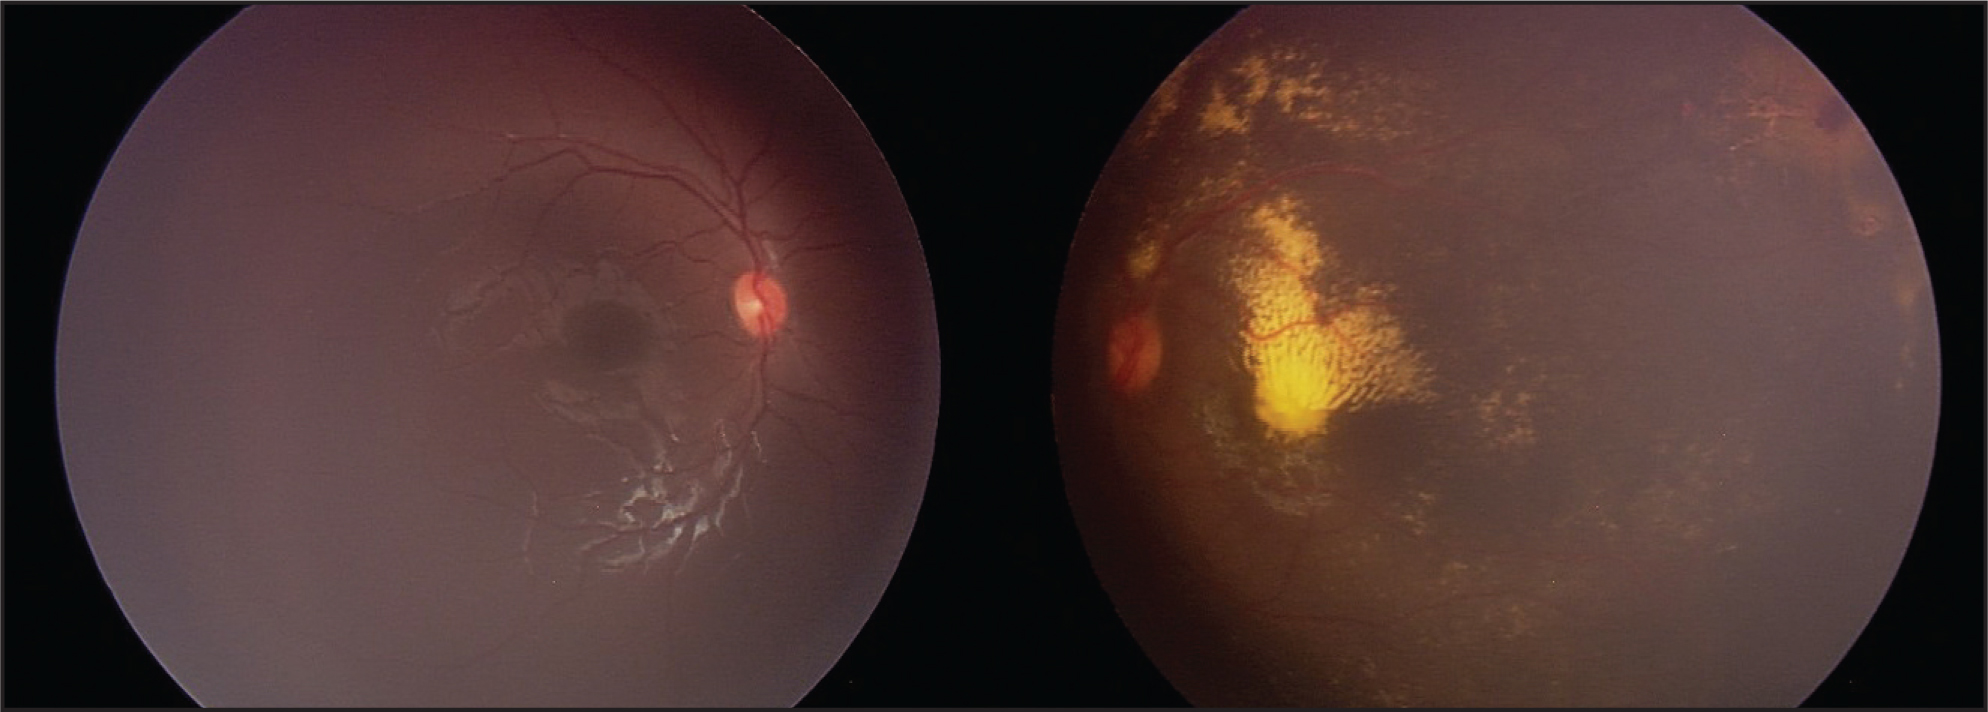 Unilateral Coats' Disease with Macular Exudate and Superotemporal Retinal Telangiectasias in the Left Eye.